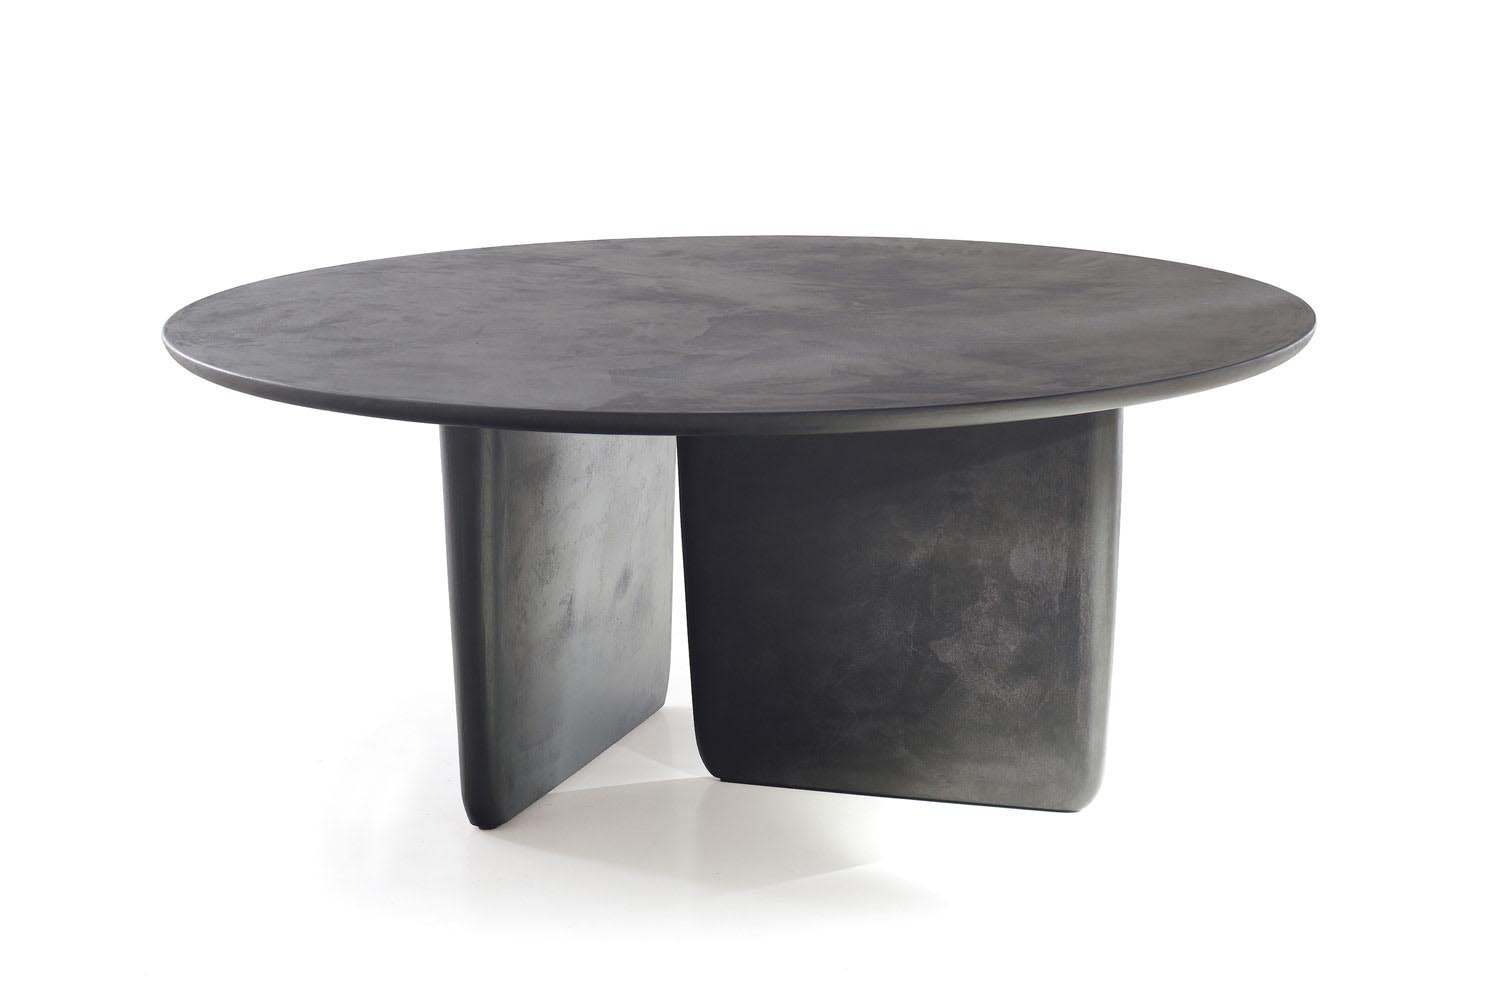 Tobi-Ishi Table by Edward Barber & Jay Osgerby for B&B Italia